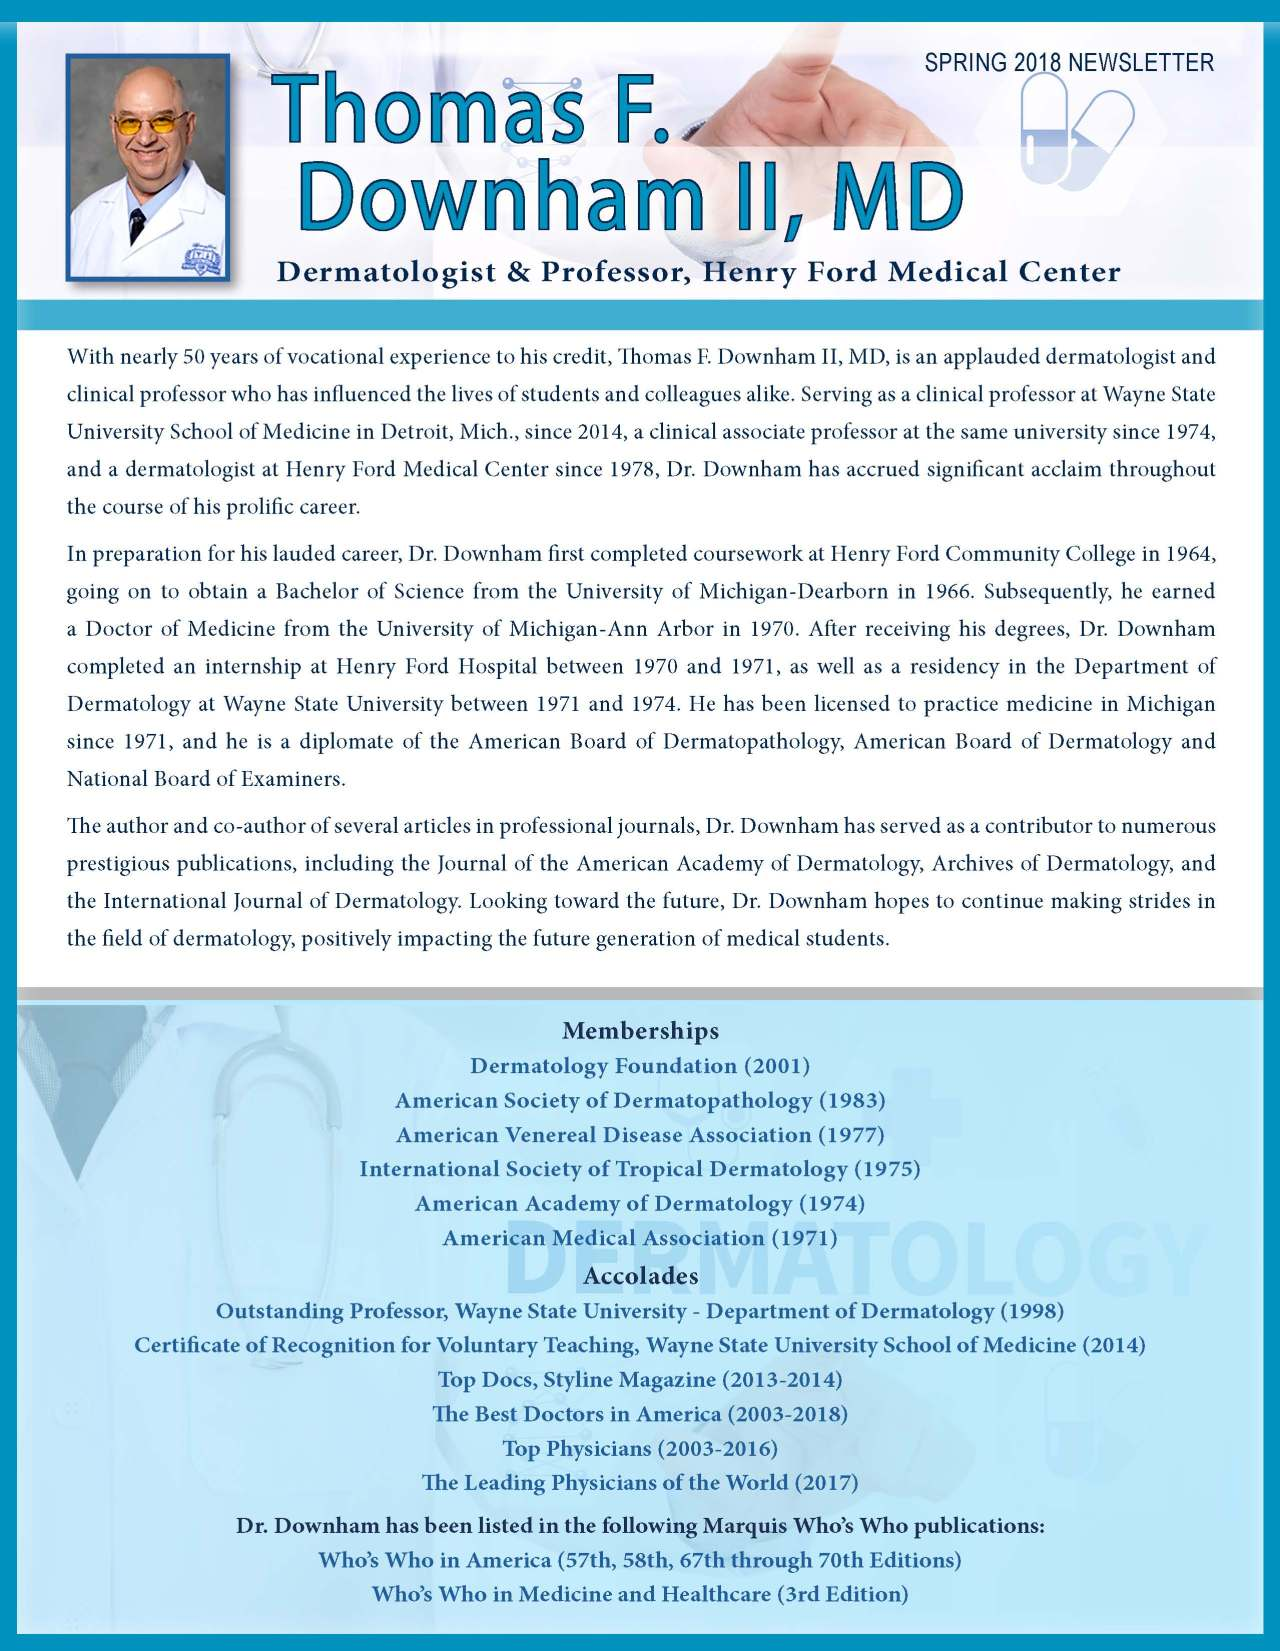 Downham, Thomas 3614355_28445402 Newsletter REVISED.jpg